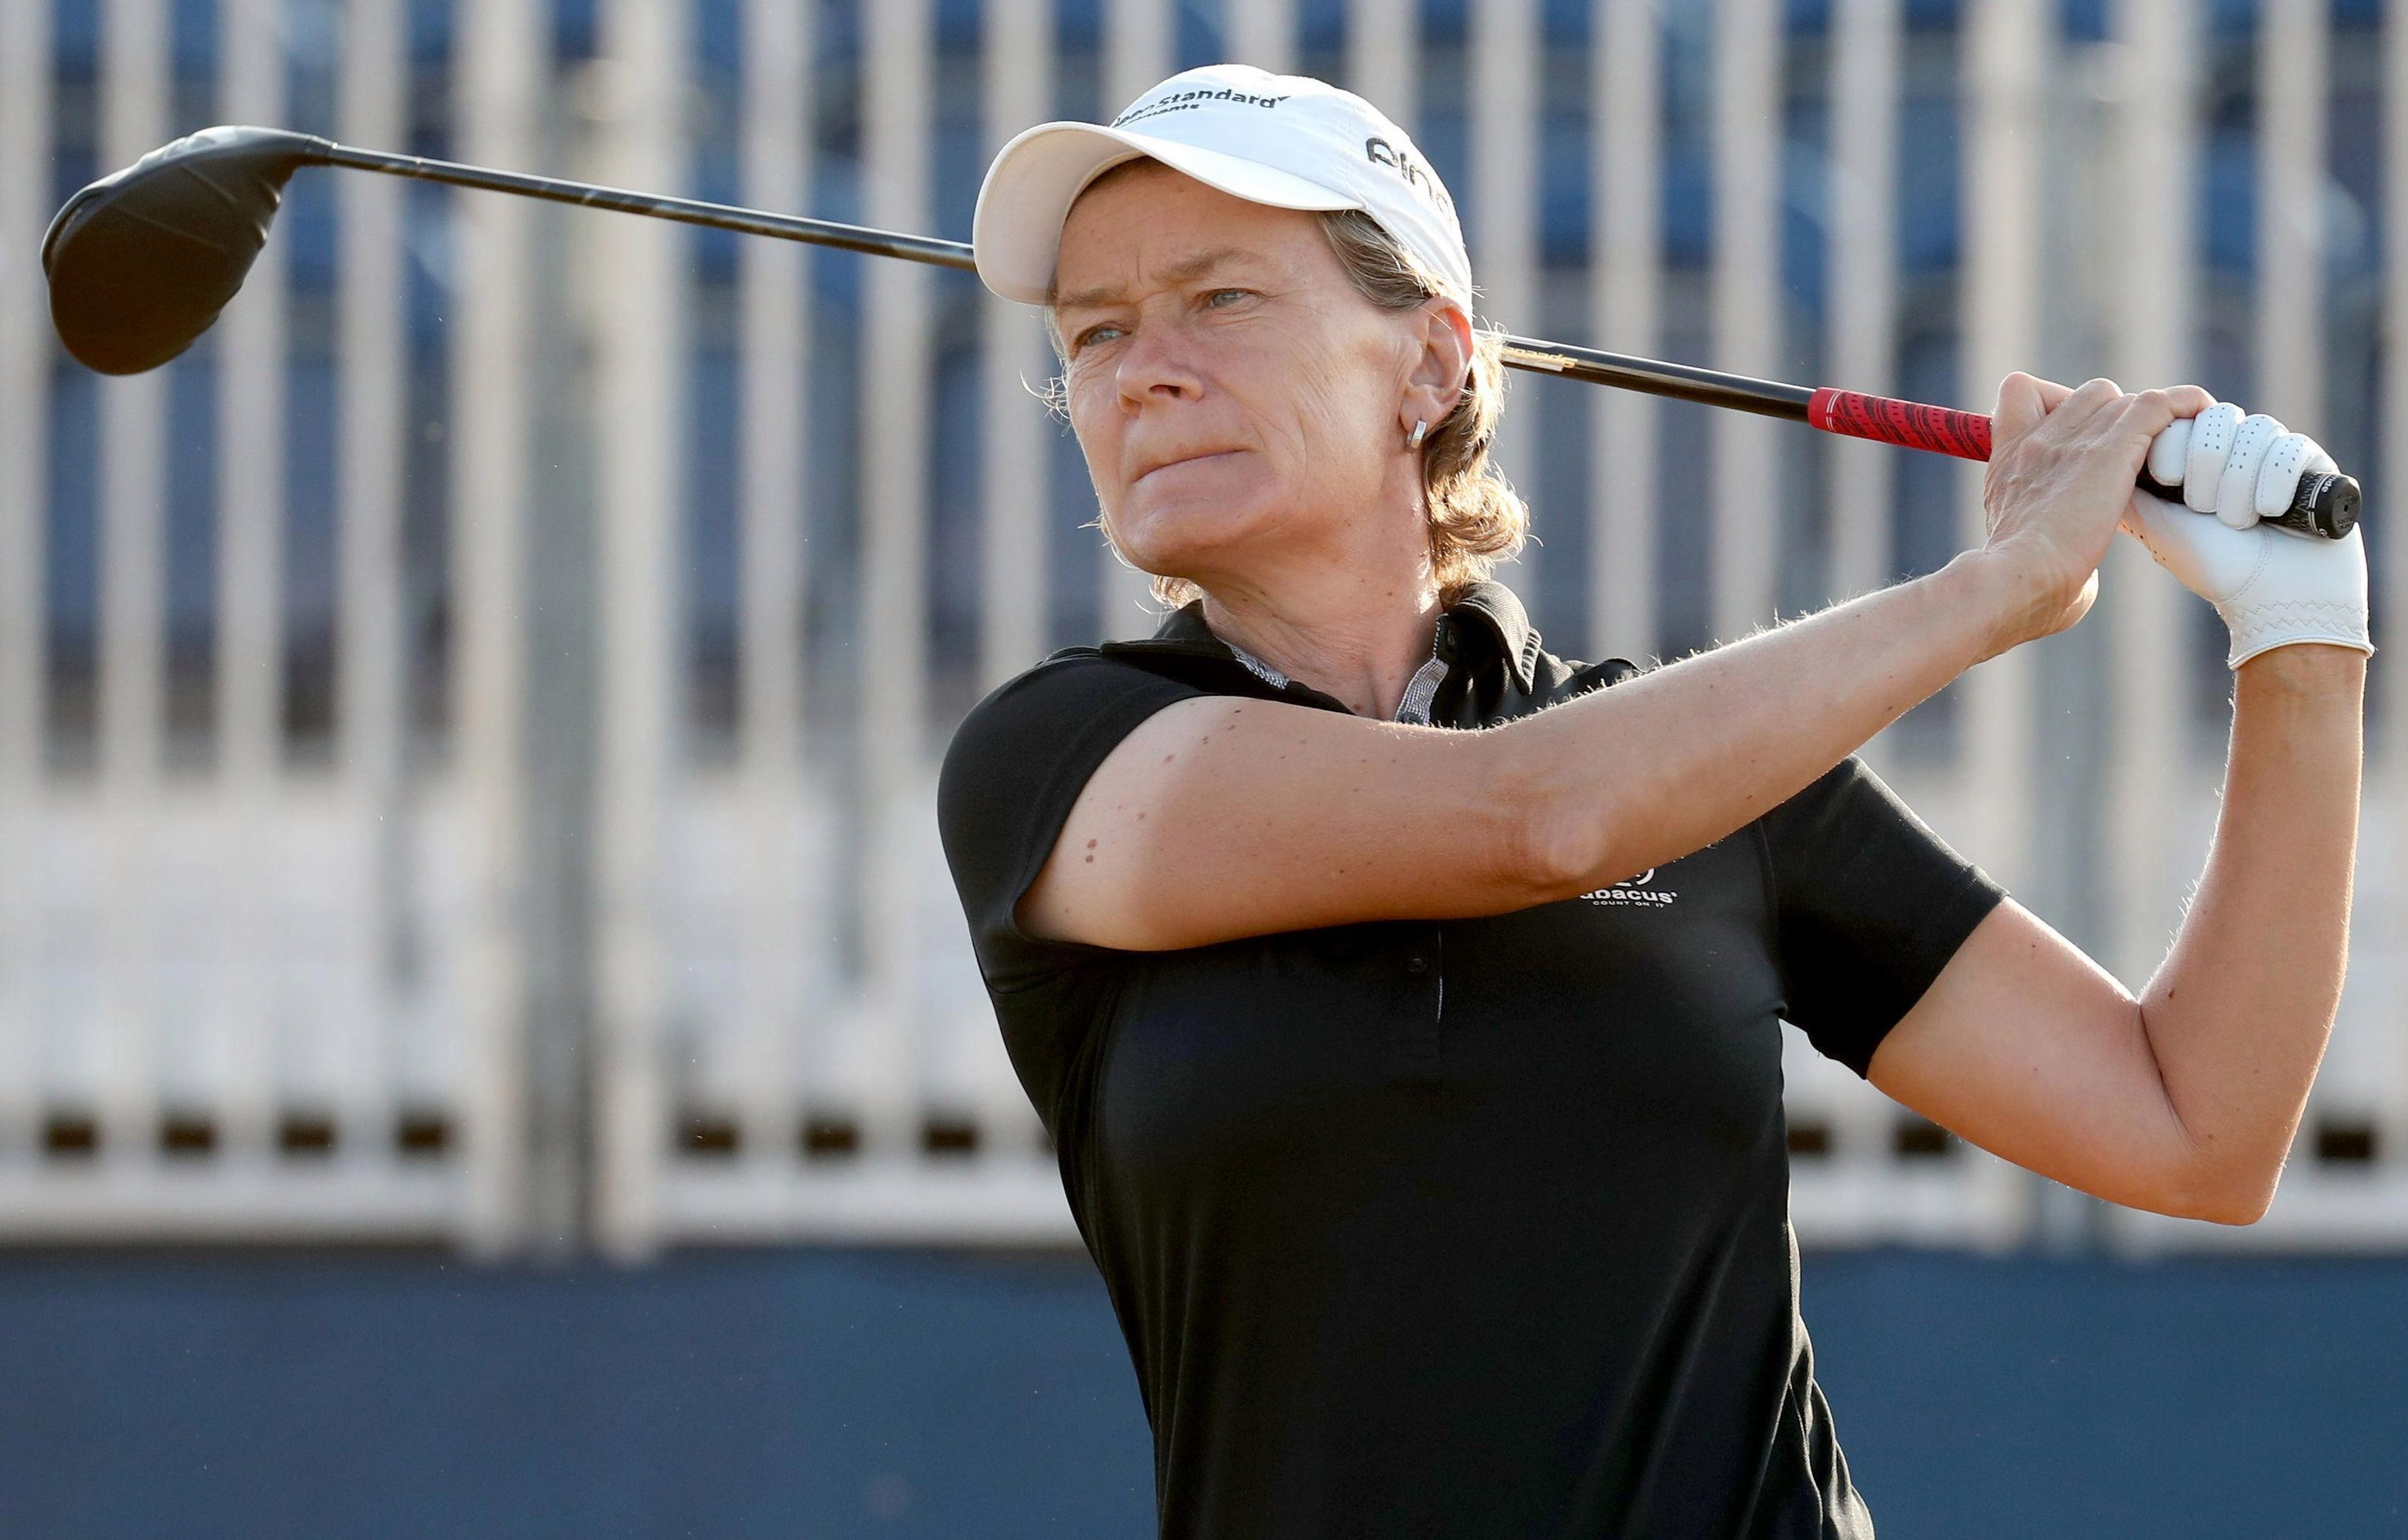 Former Solheim Cup European team captain Catriana Matthew is also in the line-up